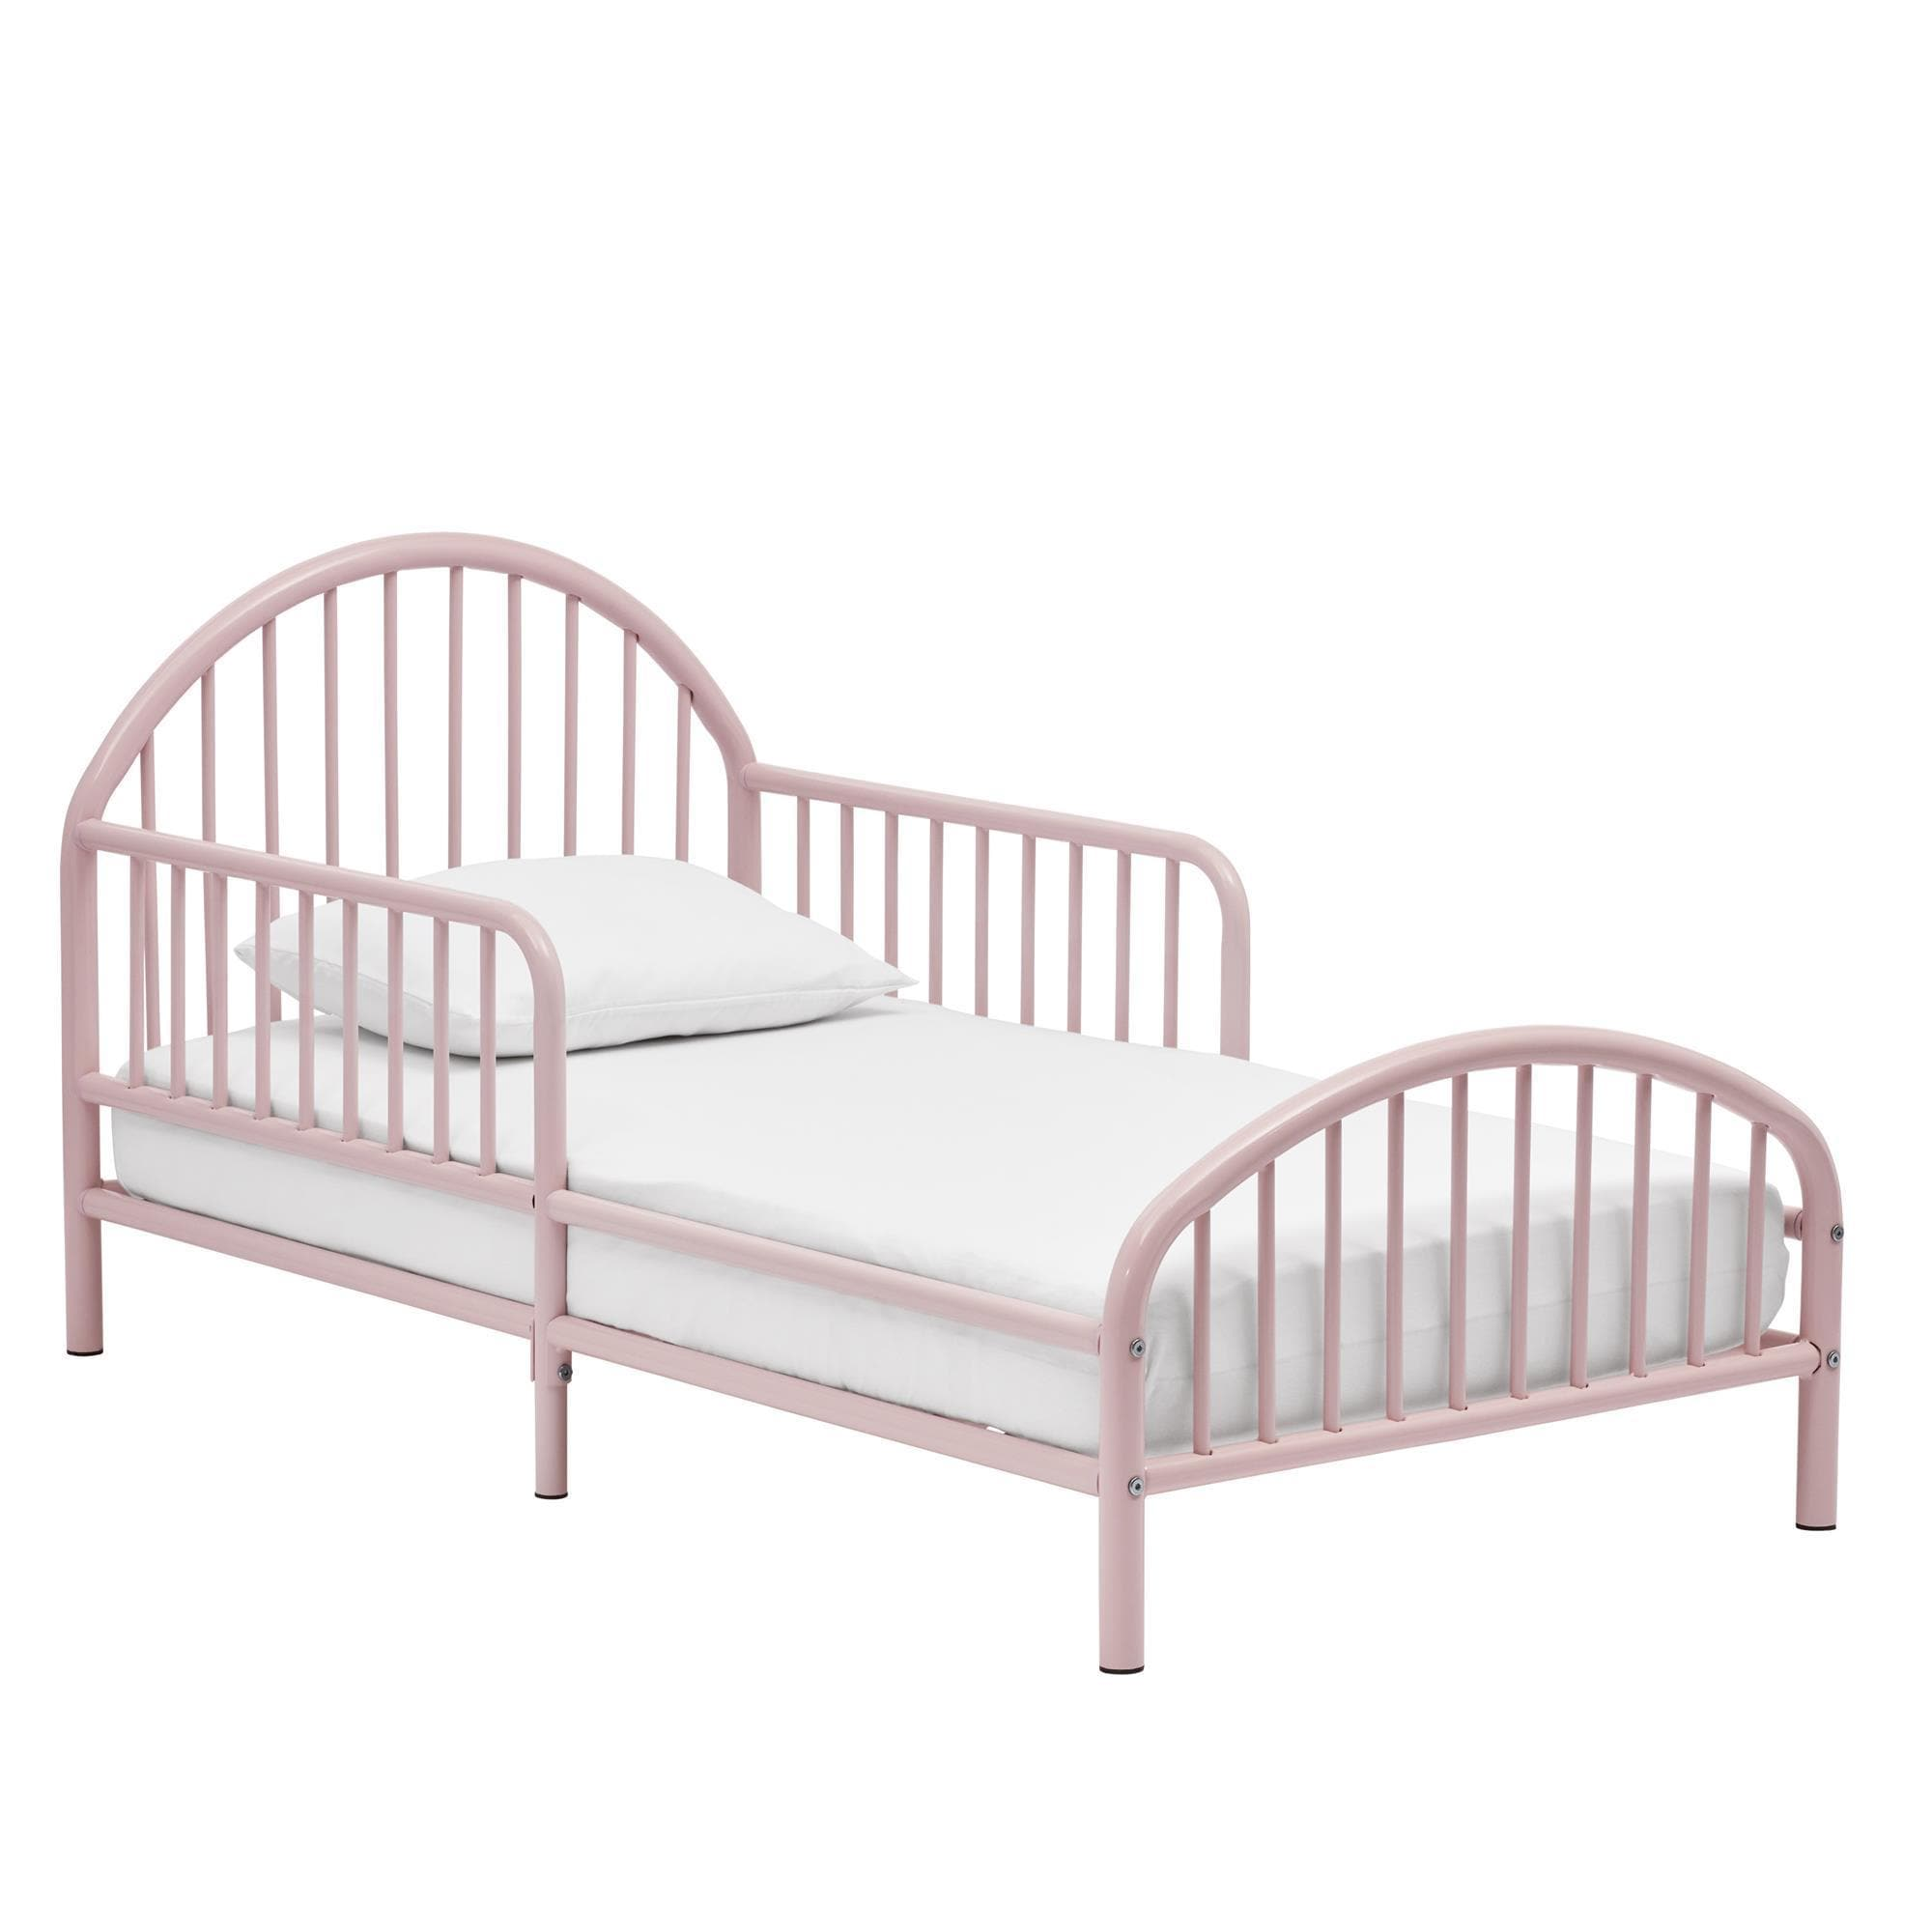 Shop Novogratz Prism Metal Toddler Bed - Free Shipping Today ...